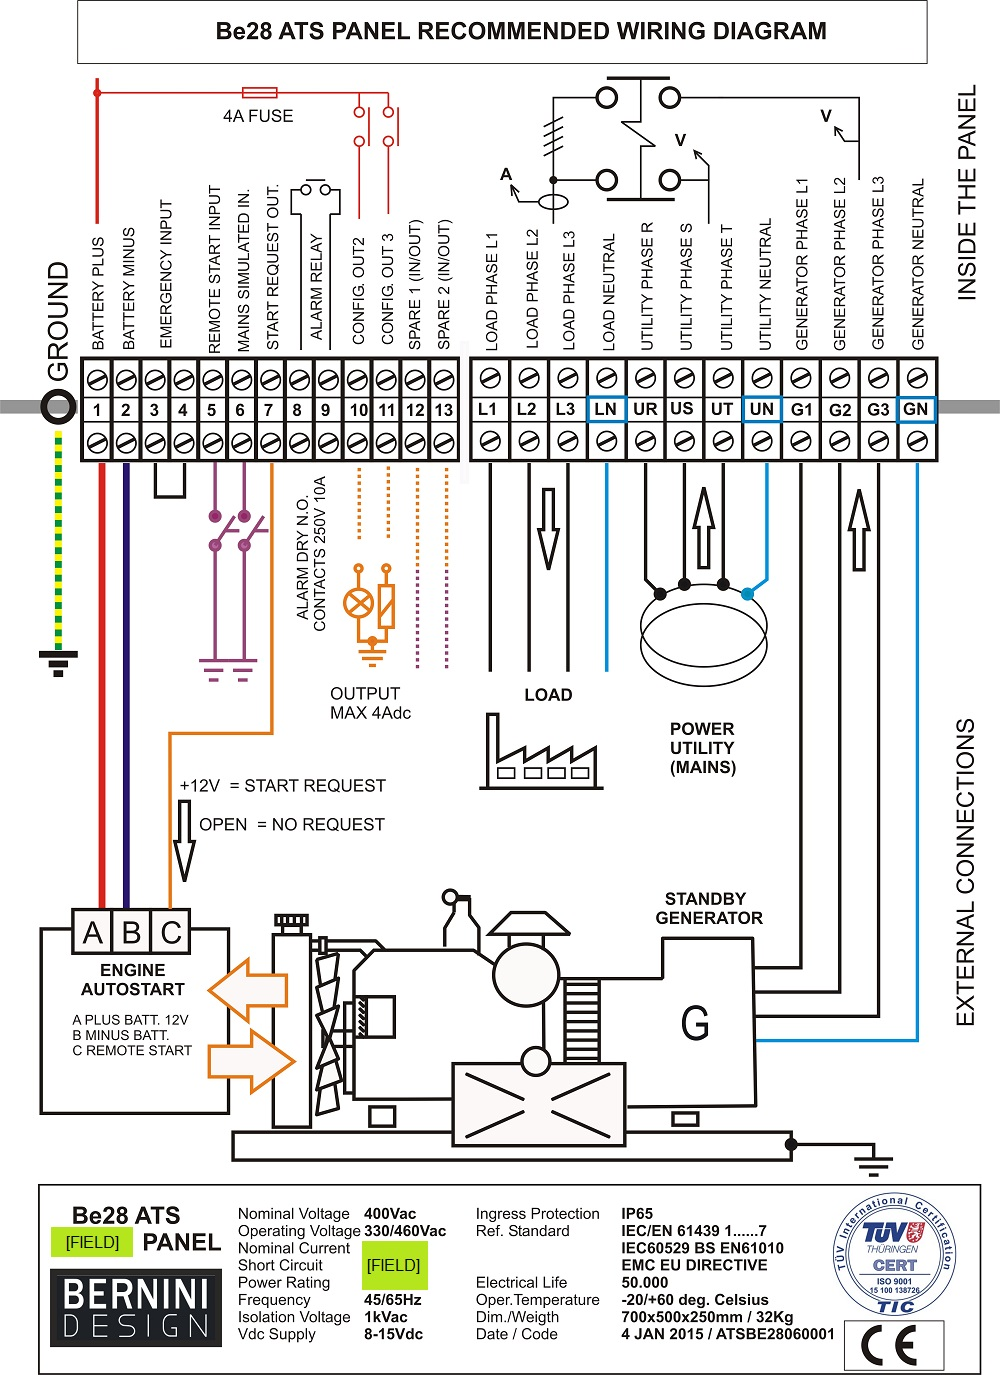 wiring standby generator transfer switch diagram?resize\=665%2C914\&ssl\=1 cat d5g wiring diagram cat d8n wiring diagram, cat 420d wiring Cat D5G Specifications at crackthecode.co